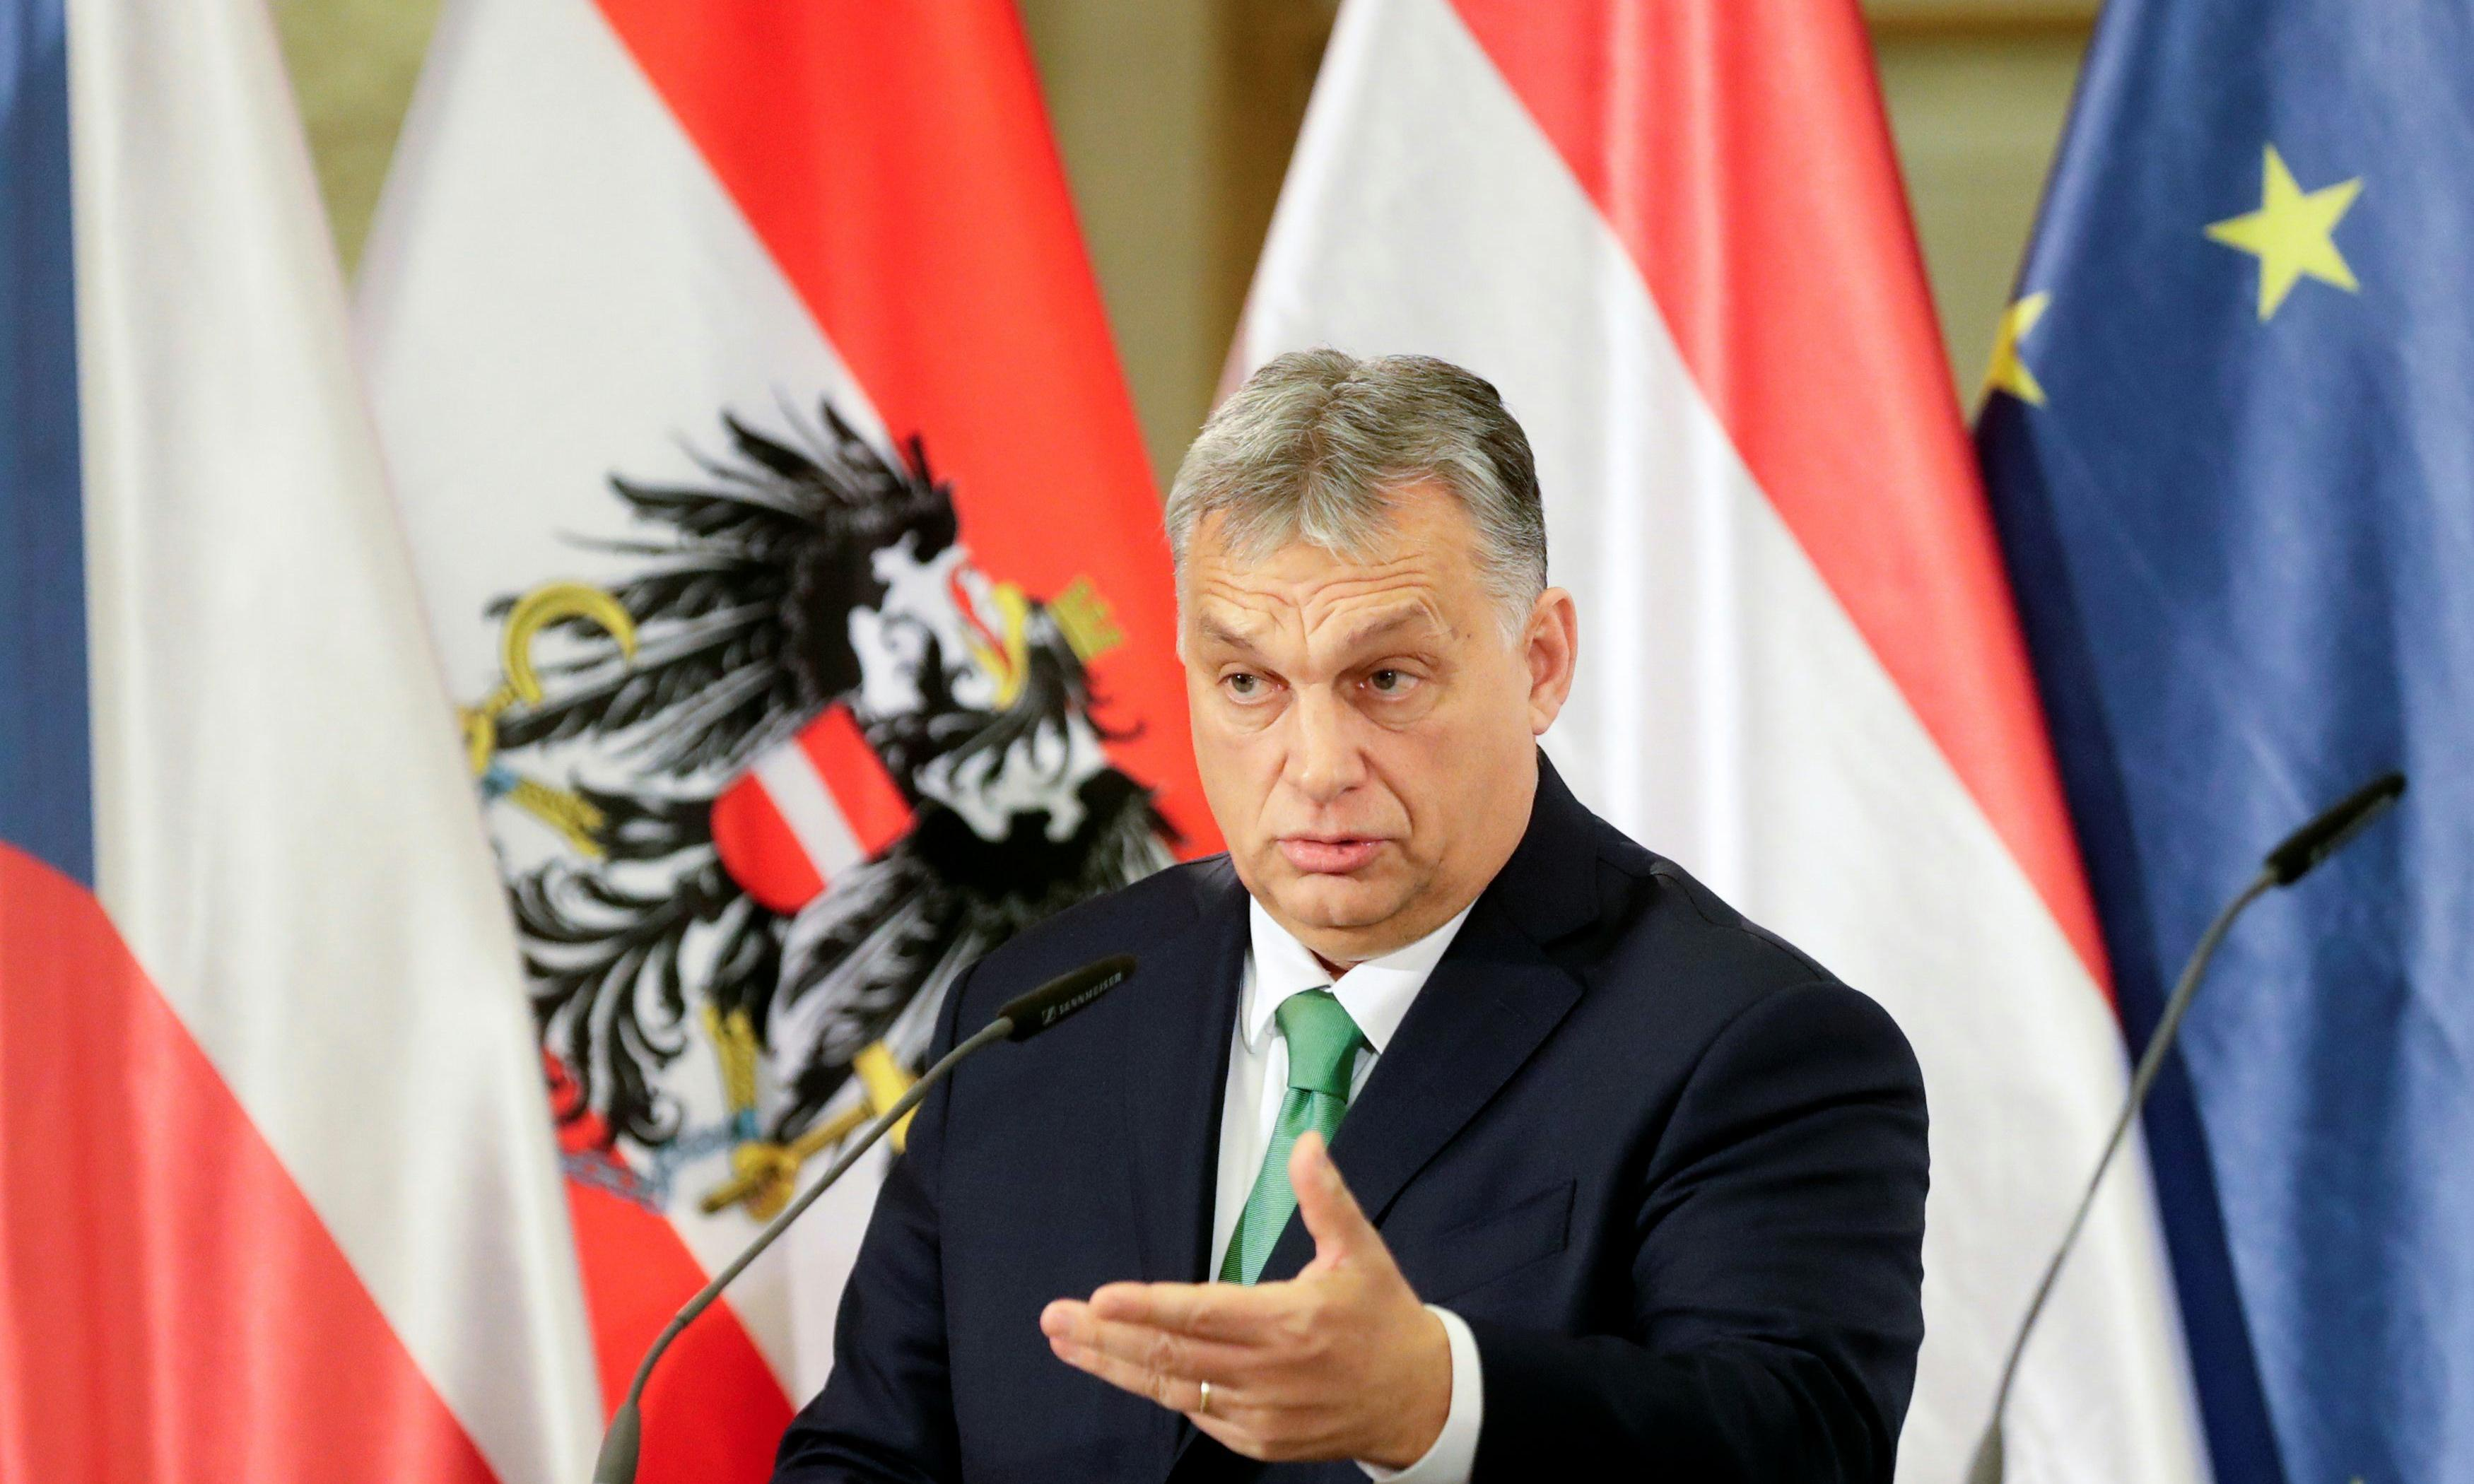 Make no mistake: Poland and Hungary aren't the only EU states abusing the law